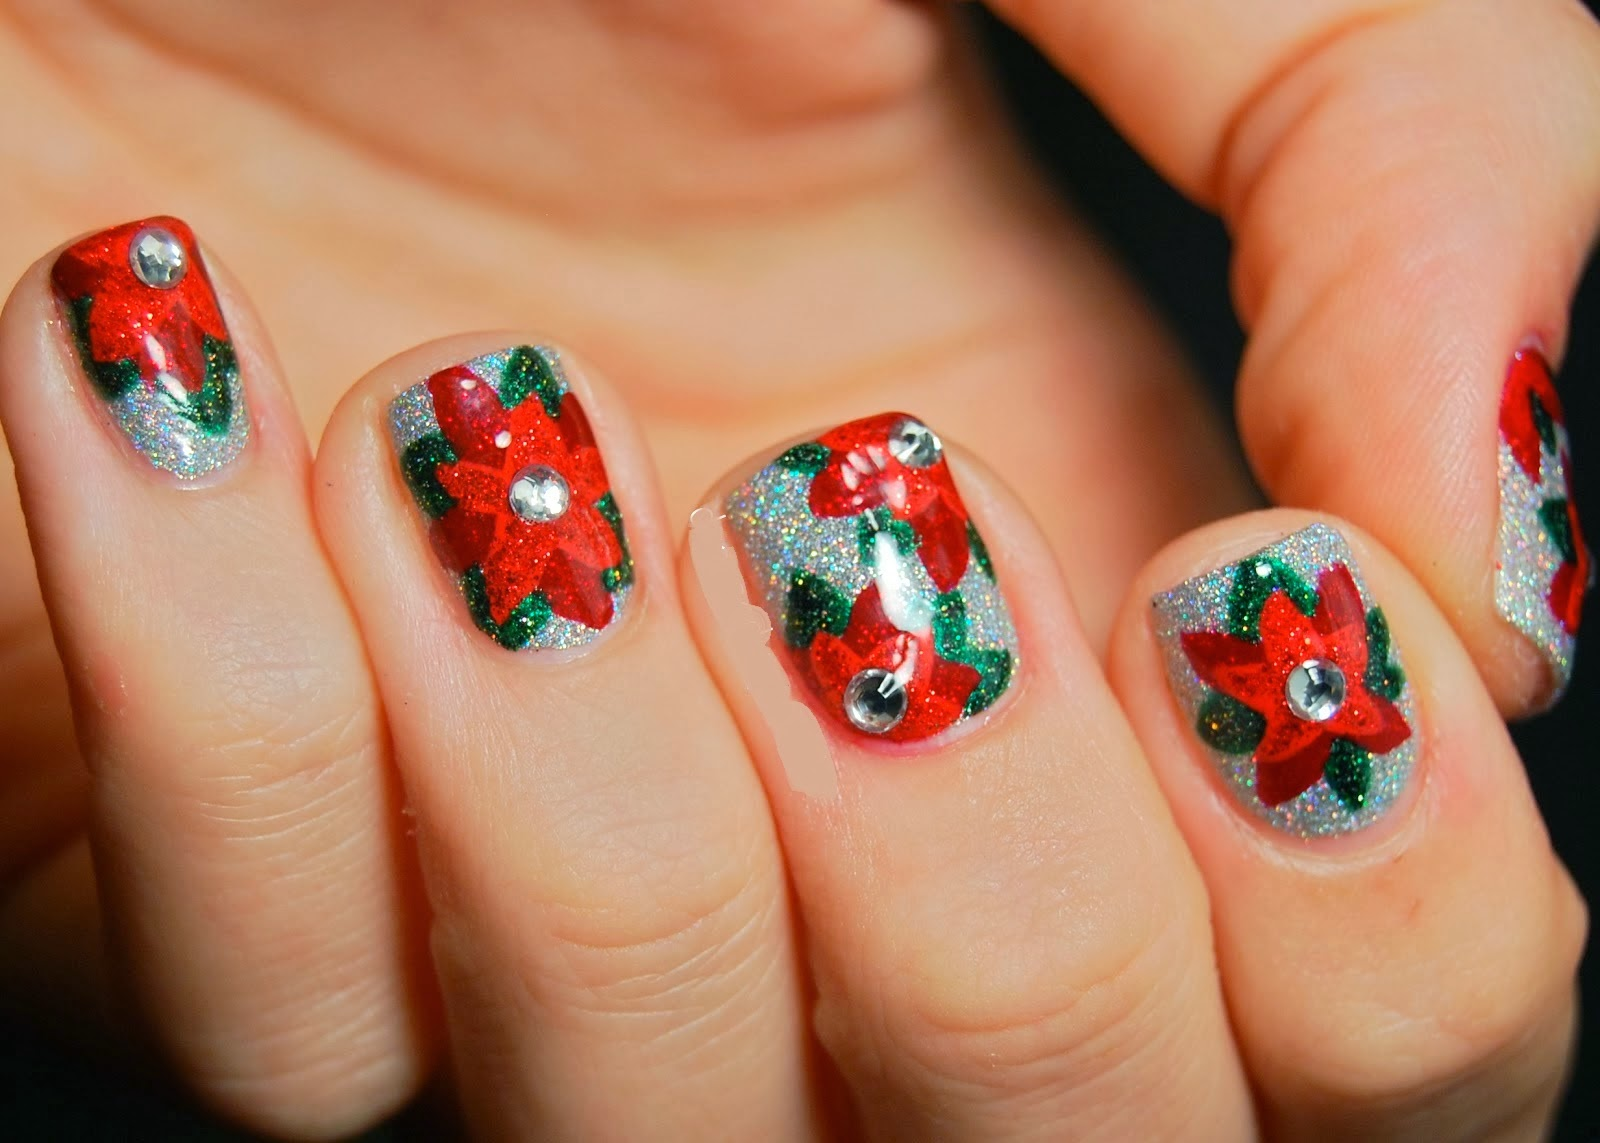 Lovely Nail Arthttp://nails-side.blogspot.com/